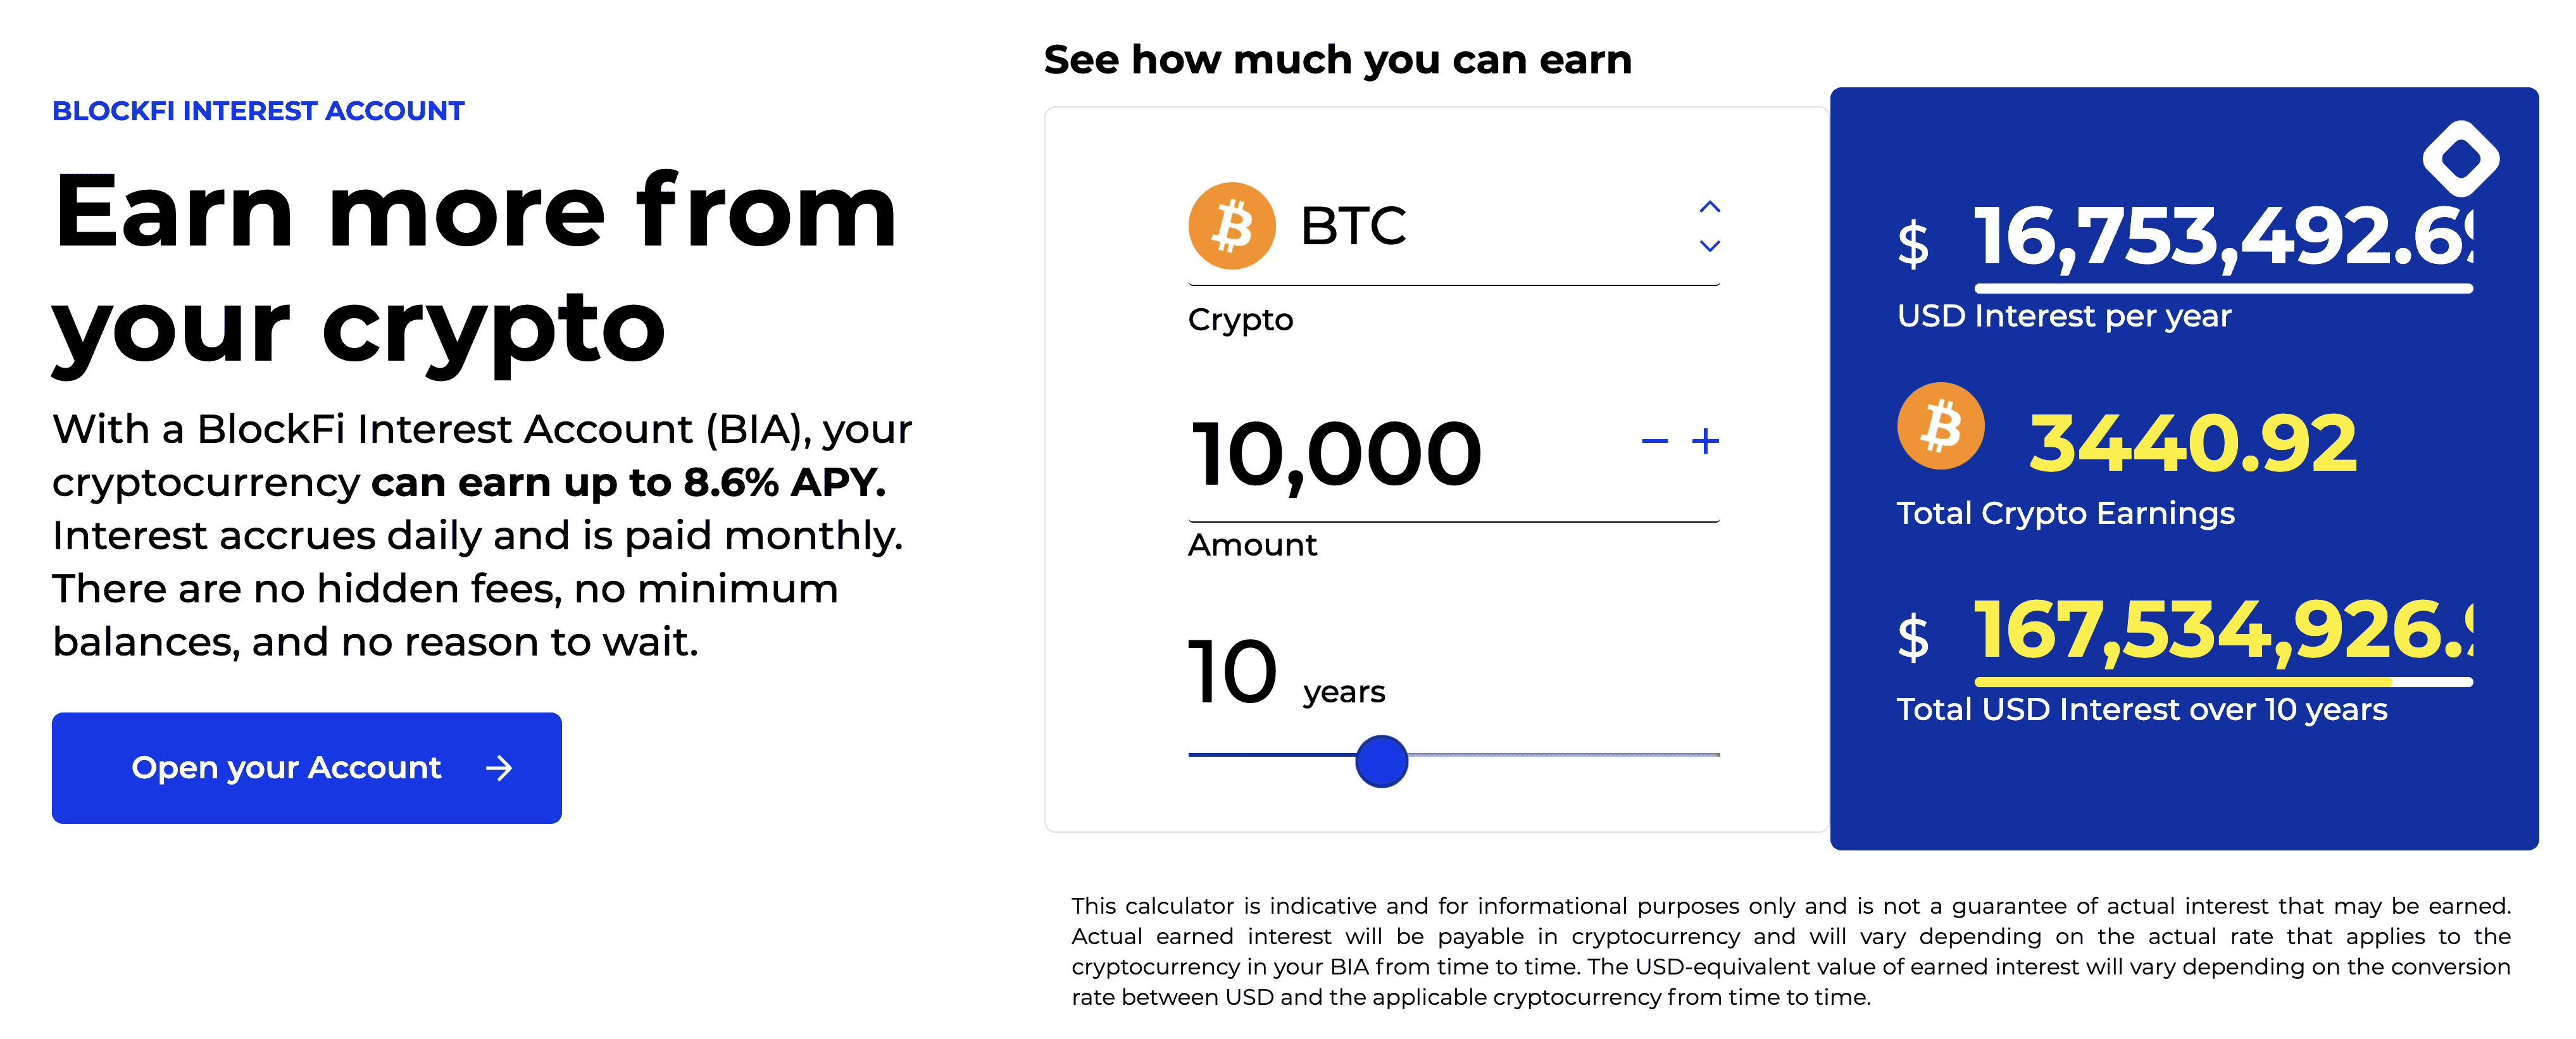 BlockFi interest calculator showing that interest over 10 years for 10k BTC could earn over $16 million.